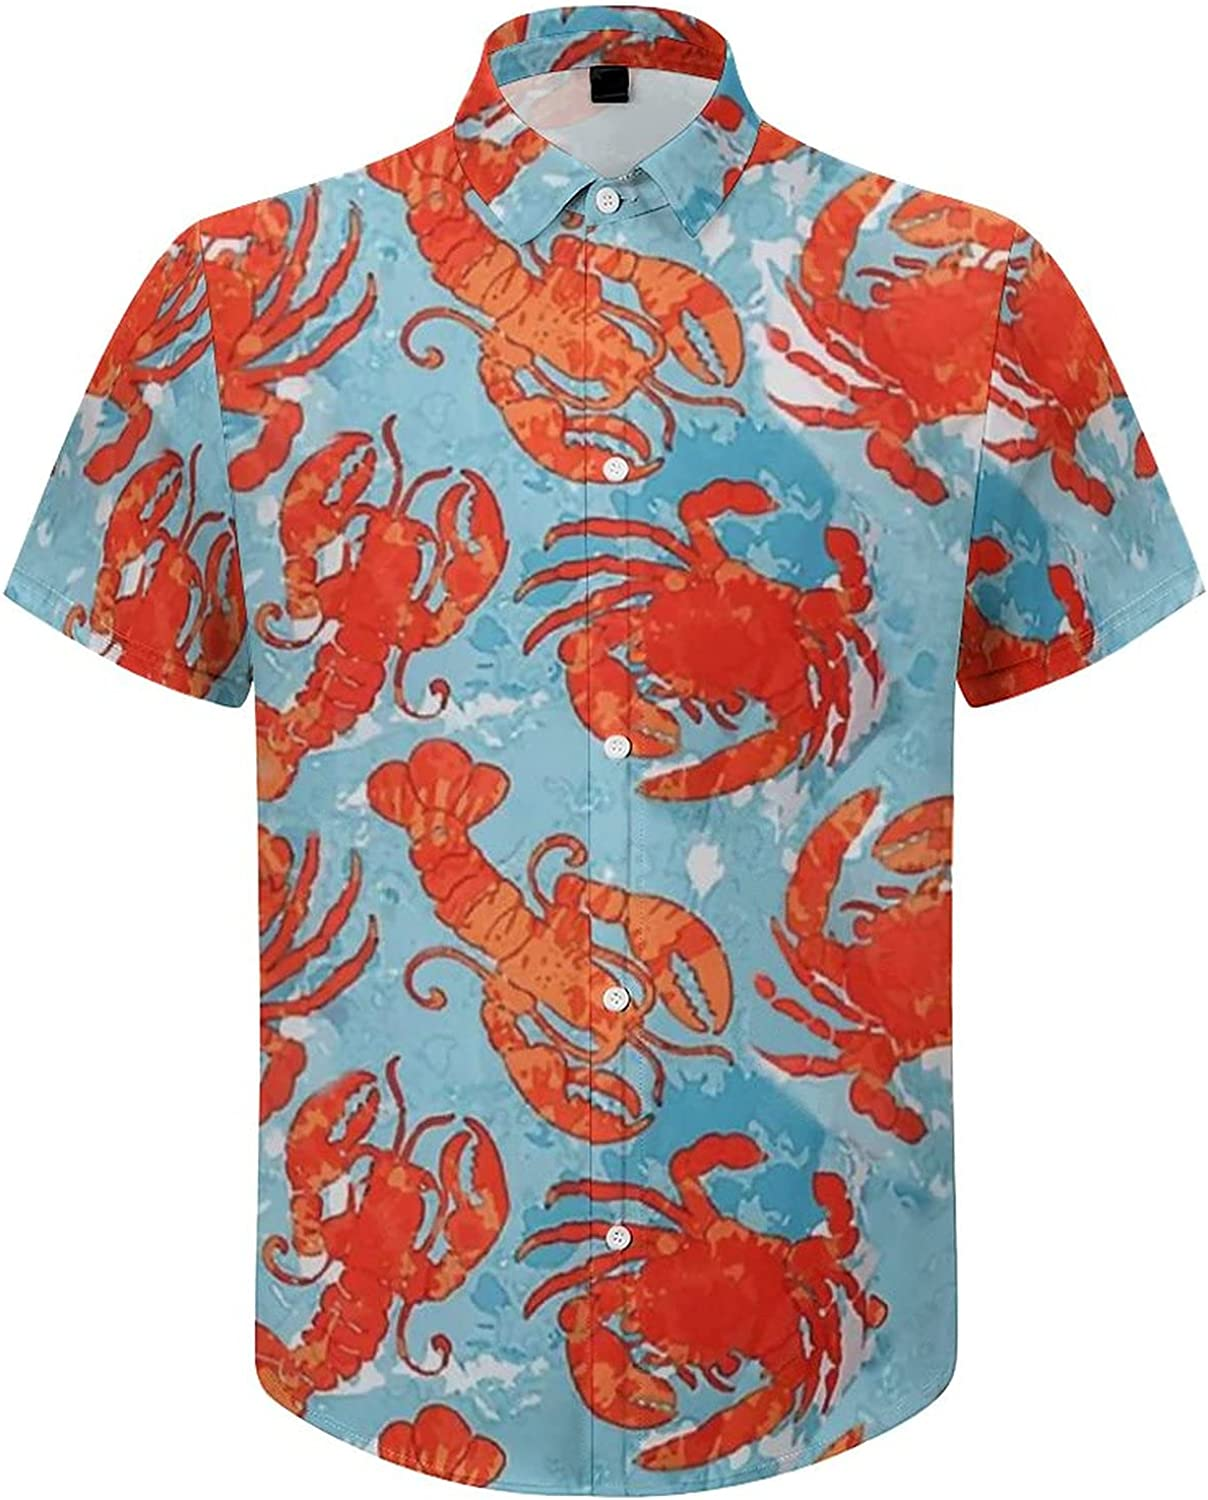 Men Button Down Shirts, Crabs and Lobsters Short Sleeve Shirt Spring Premium Boys Top